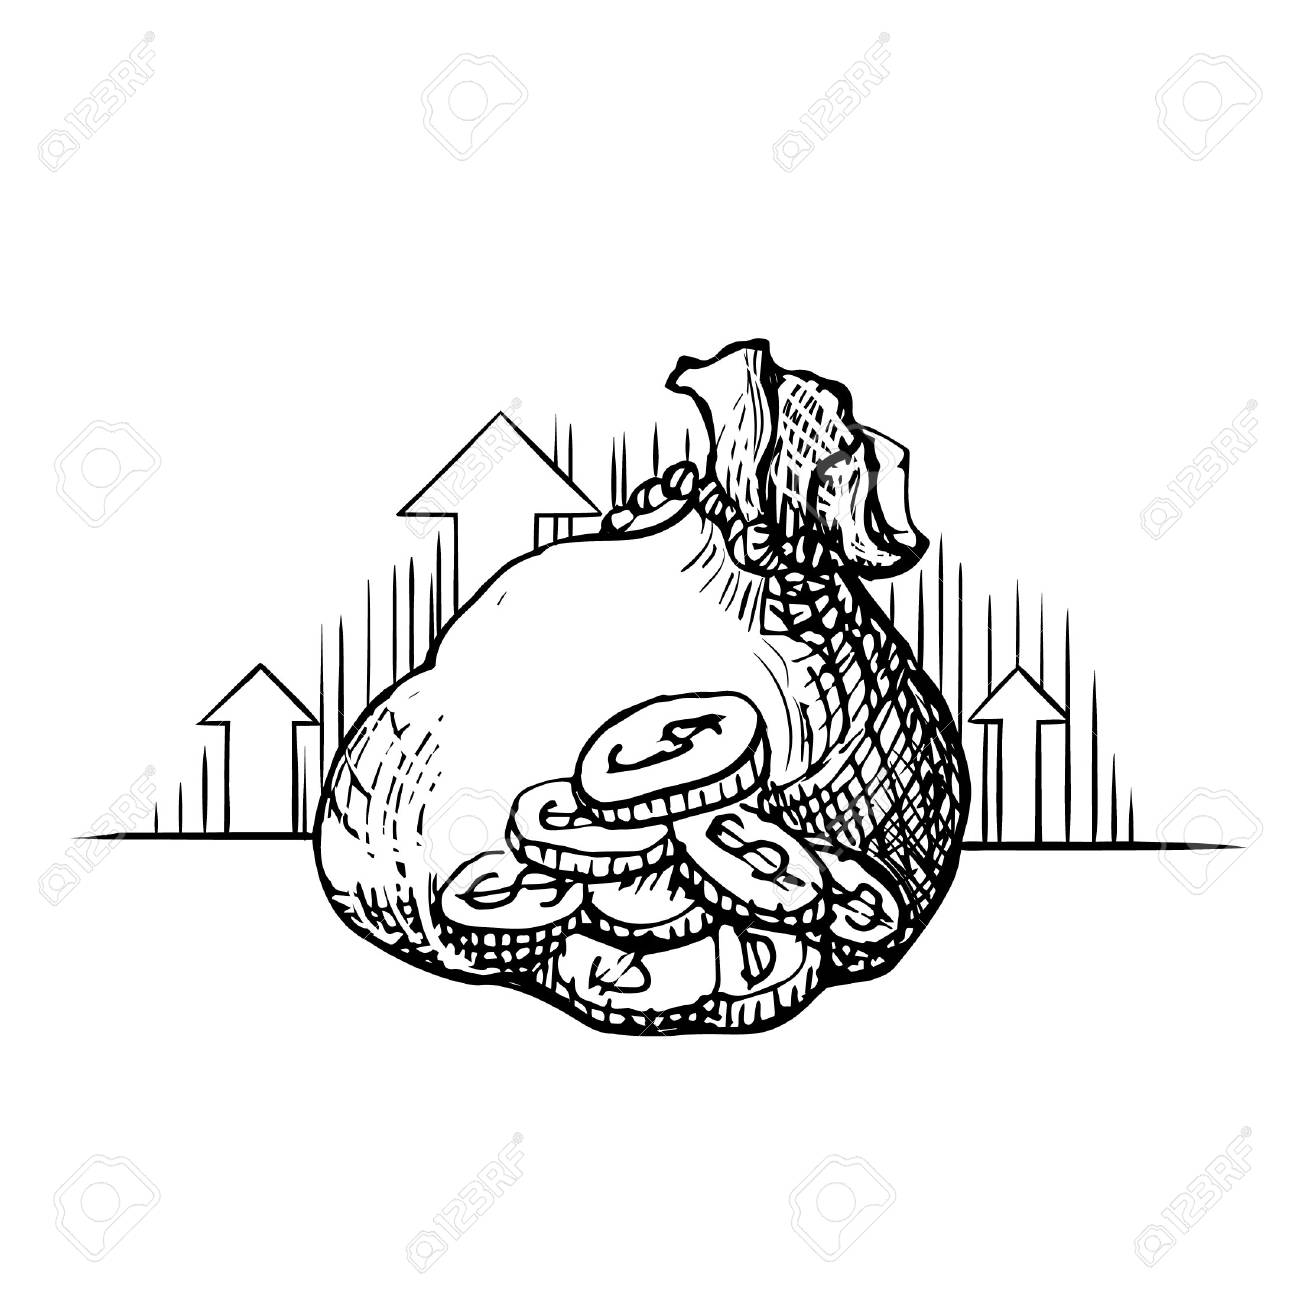 Vector vintage engraved ink illustration Money bag - hand drawn sketch icon moneybag dollar sign isolated on white background. Symbol of safe storage and wealth for a businessman - 101294721